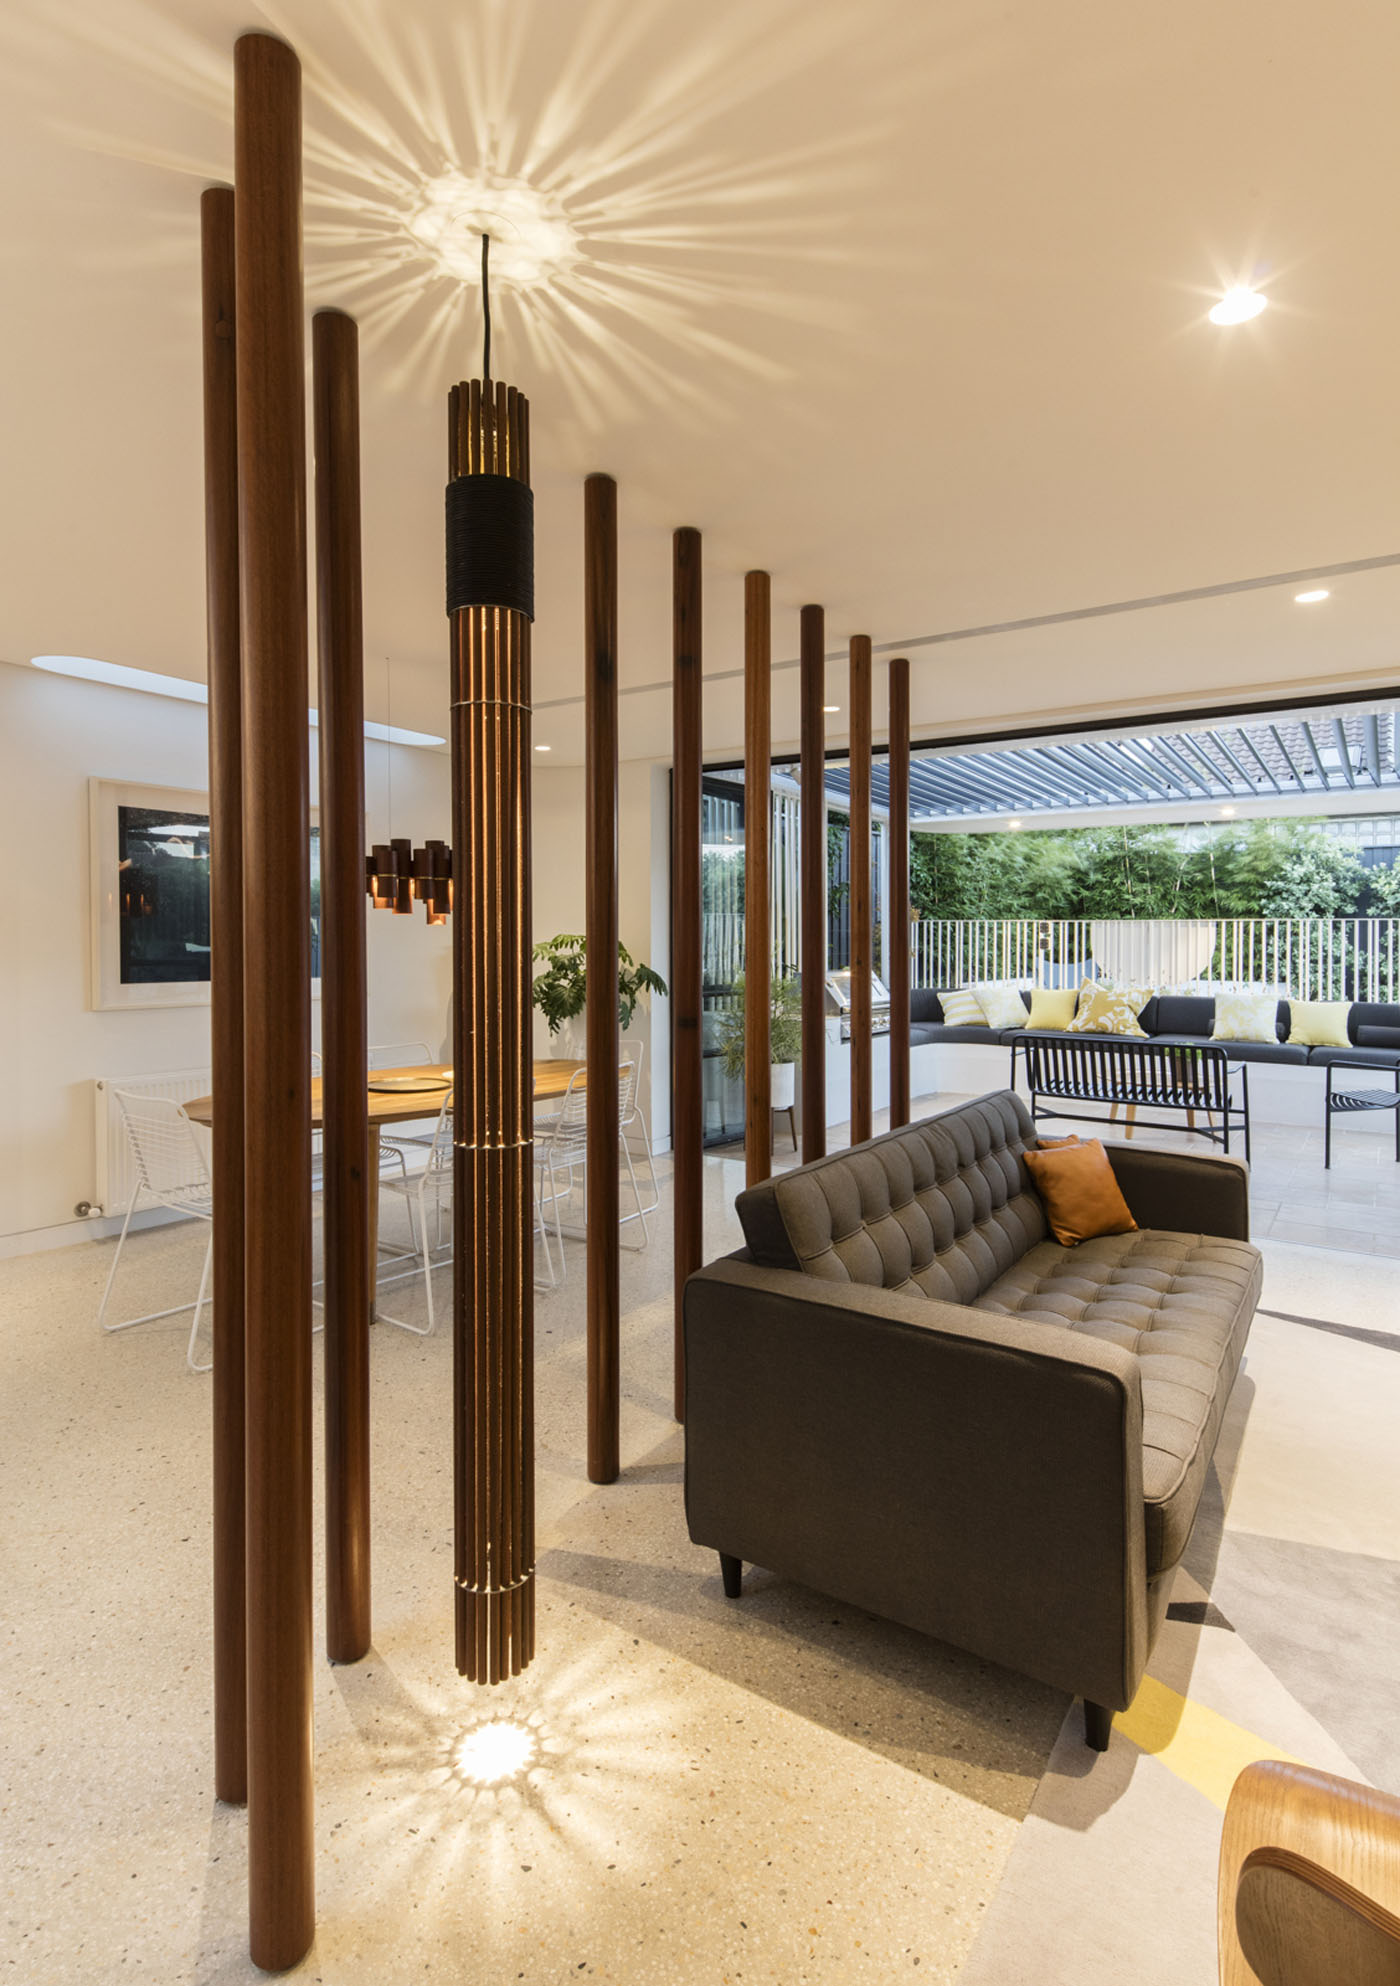 Dover Heights Pendants by award winning Sydney firm Sam Crawford Architects. Custom design recycled pendant light gives characteristic to open living space